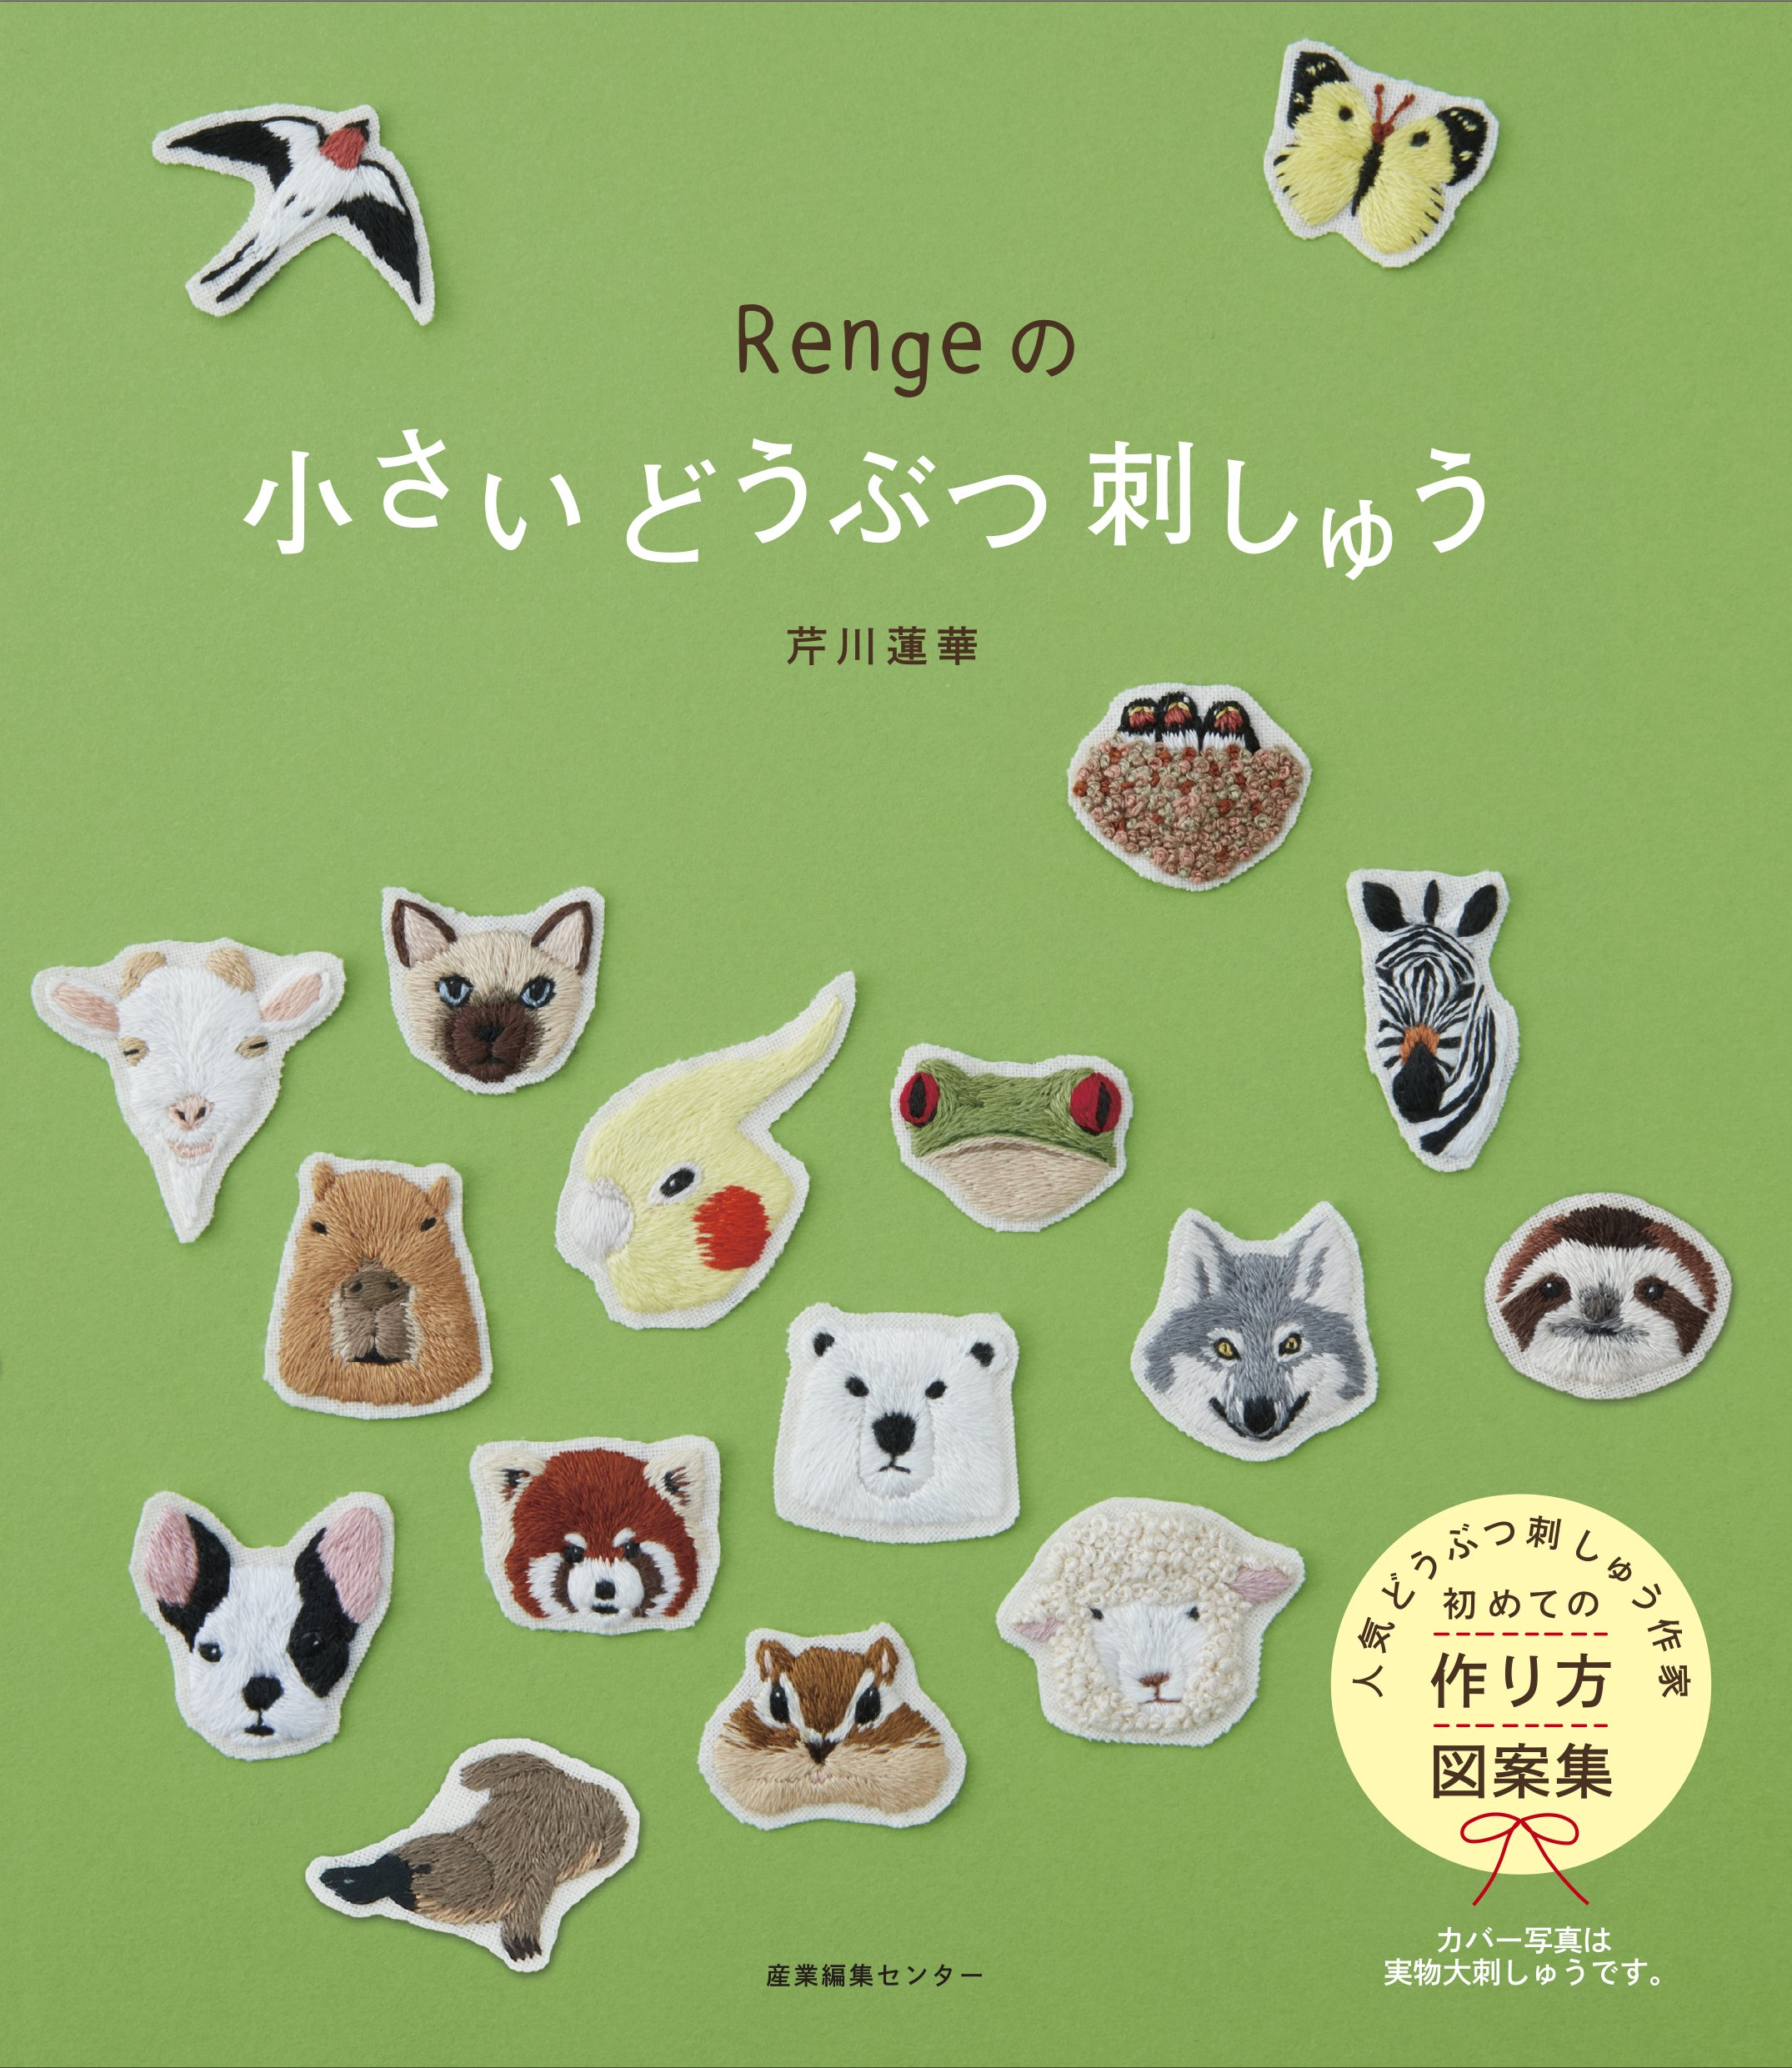 Renge small animal embroidery